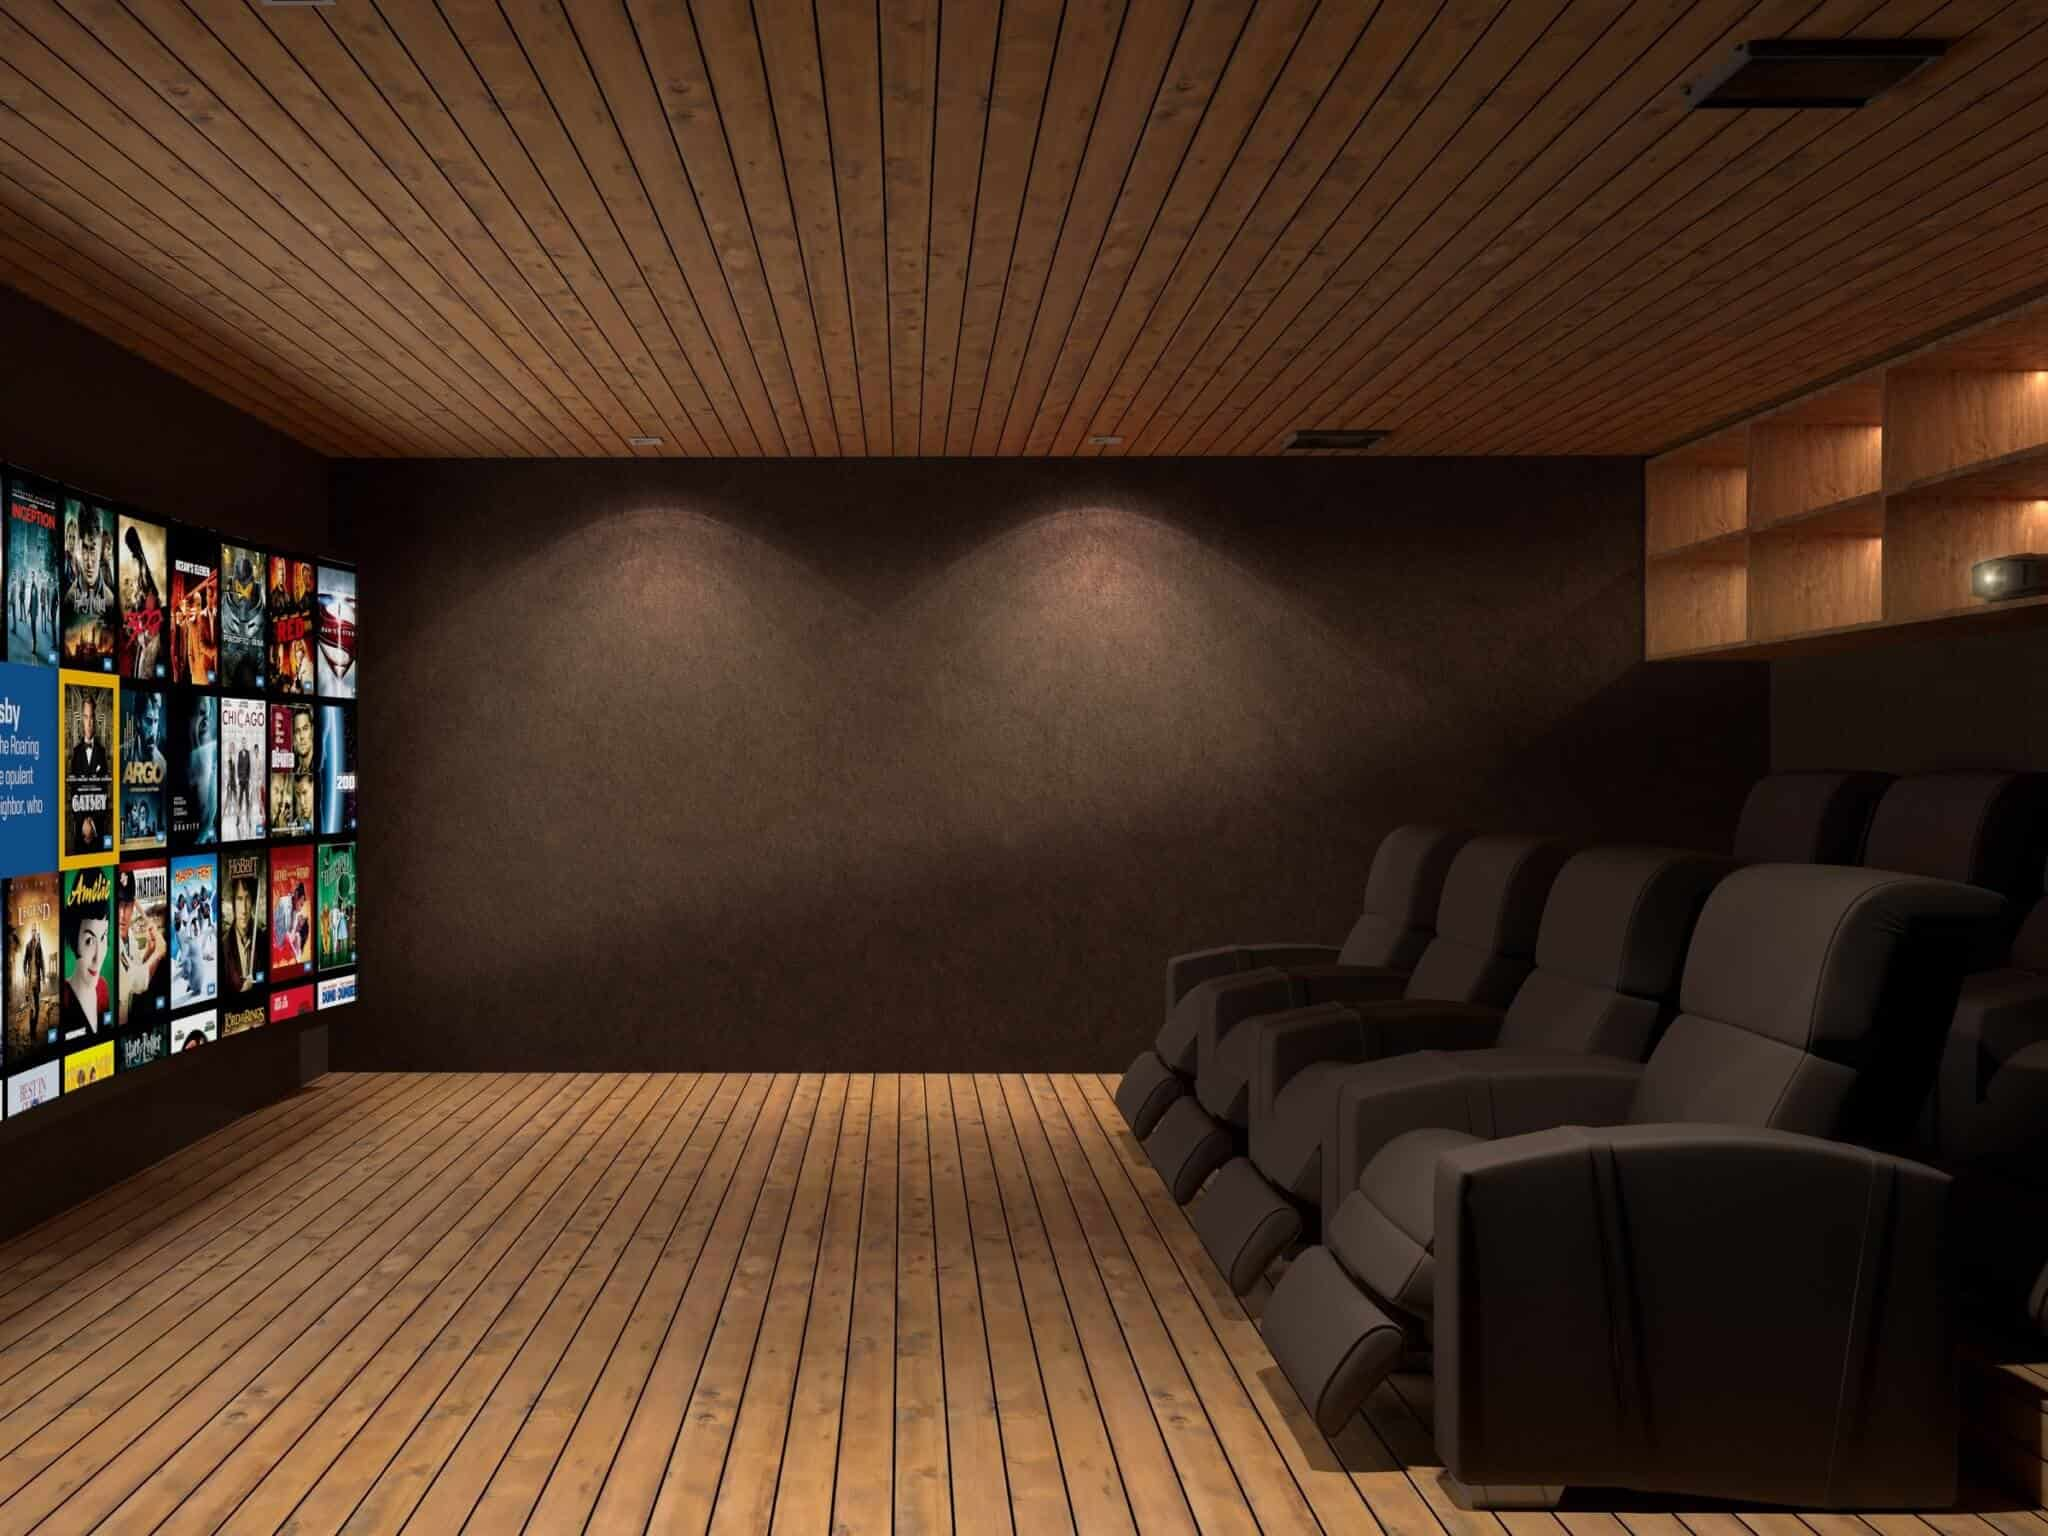 Home Cinema / Salle de Cinema, Megeve